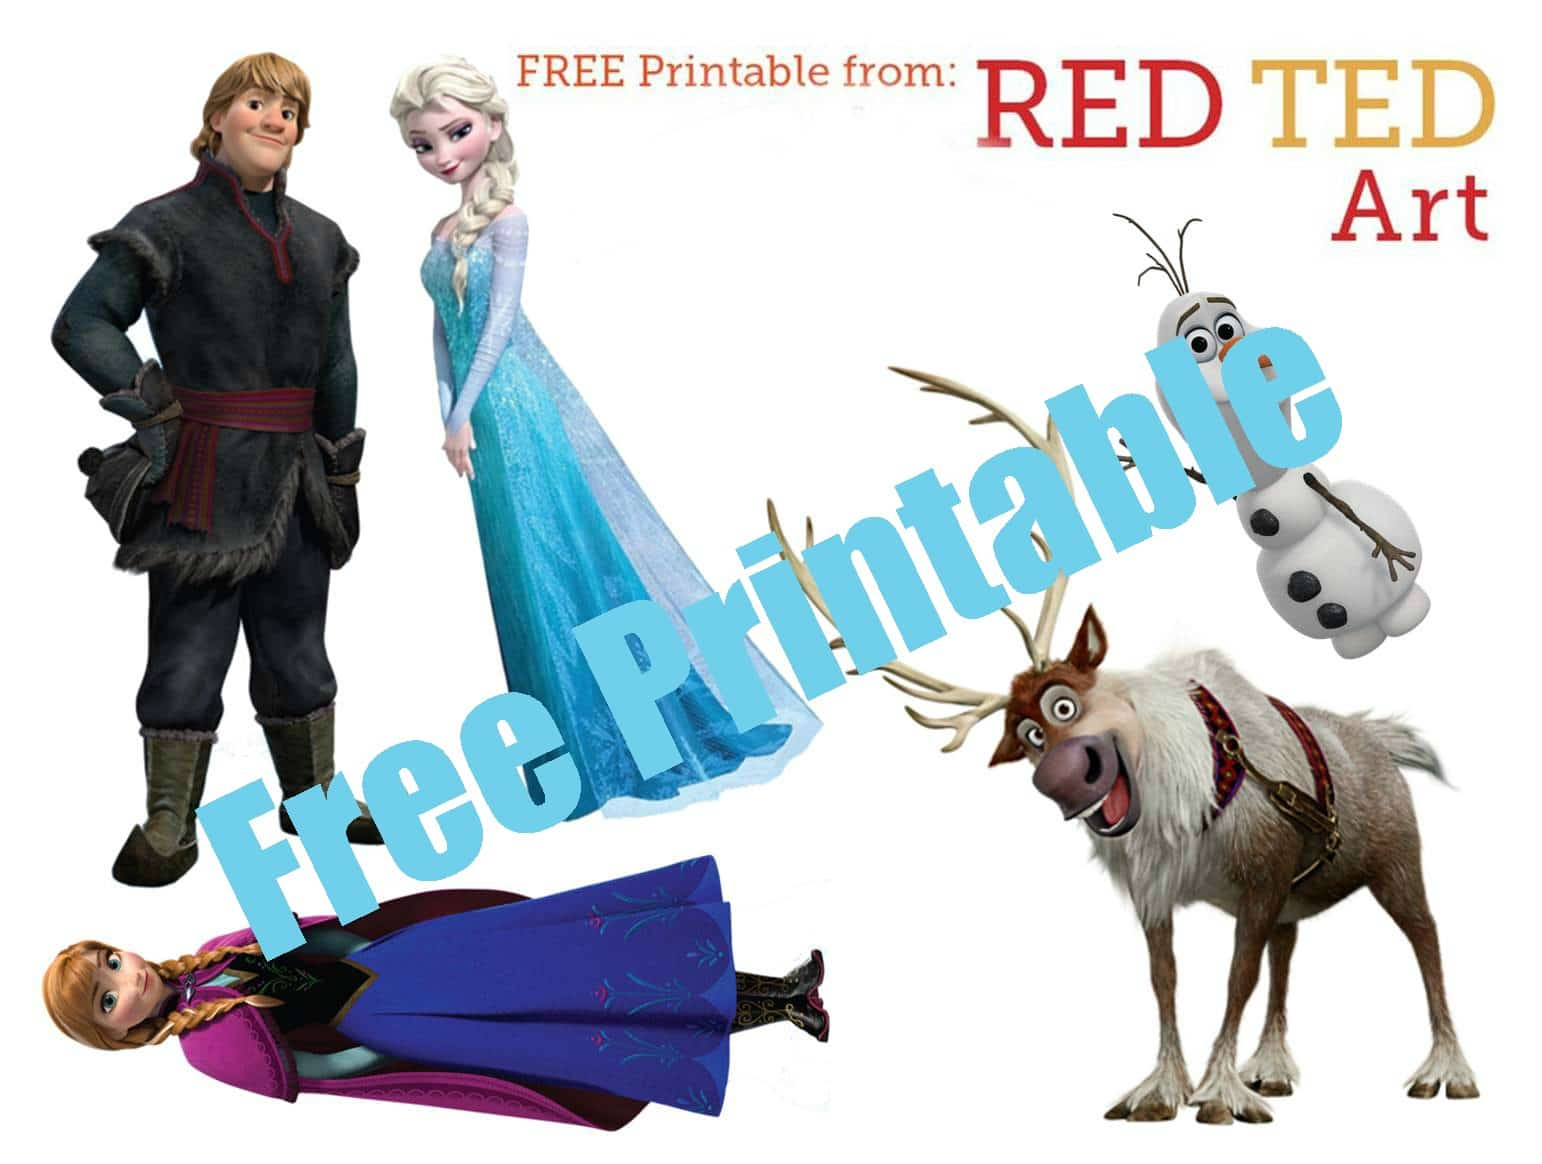 Frozen Characters Free Printable 2 Red Ted Art S Blog